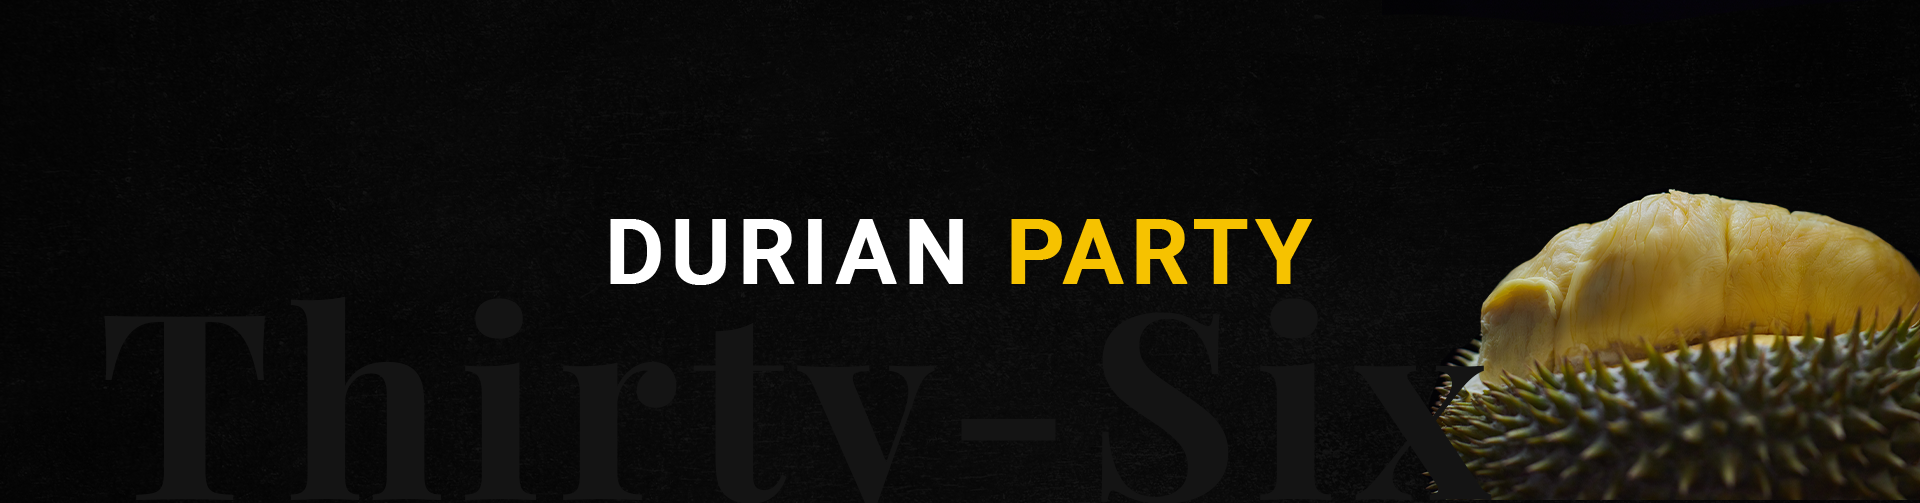 Durian Party - Banner